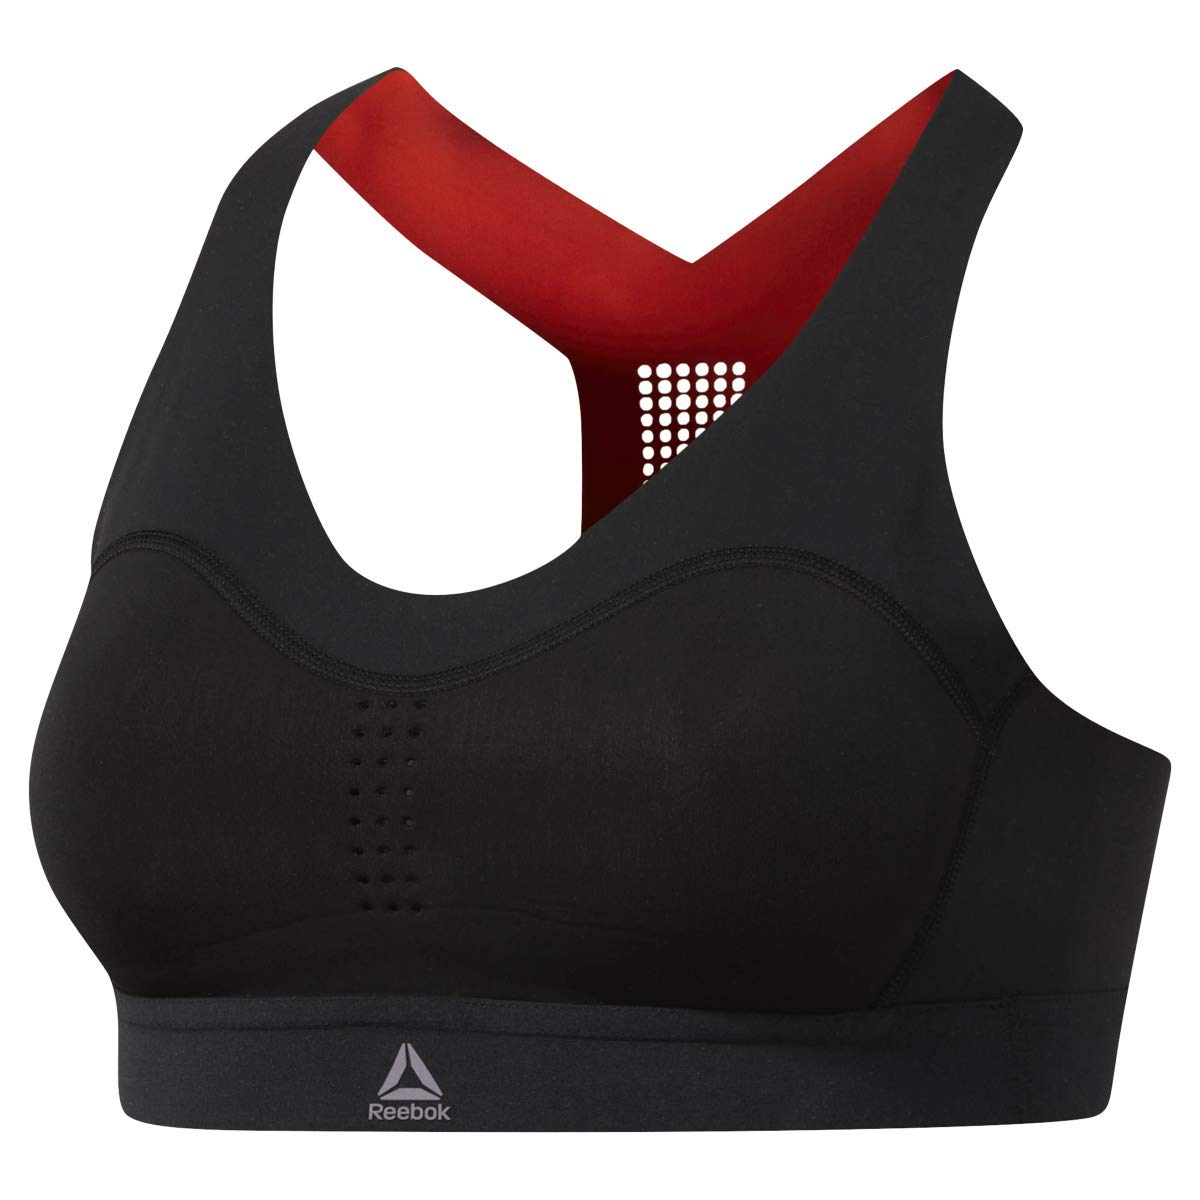 Reebok Puremove Bra, Black, X-Small/Small by Reebok (Image #1)